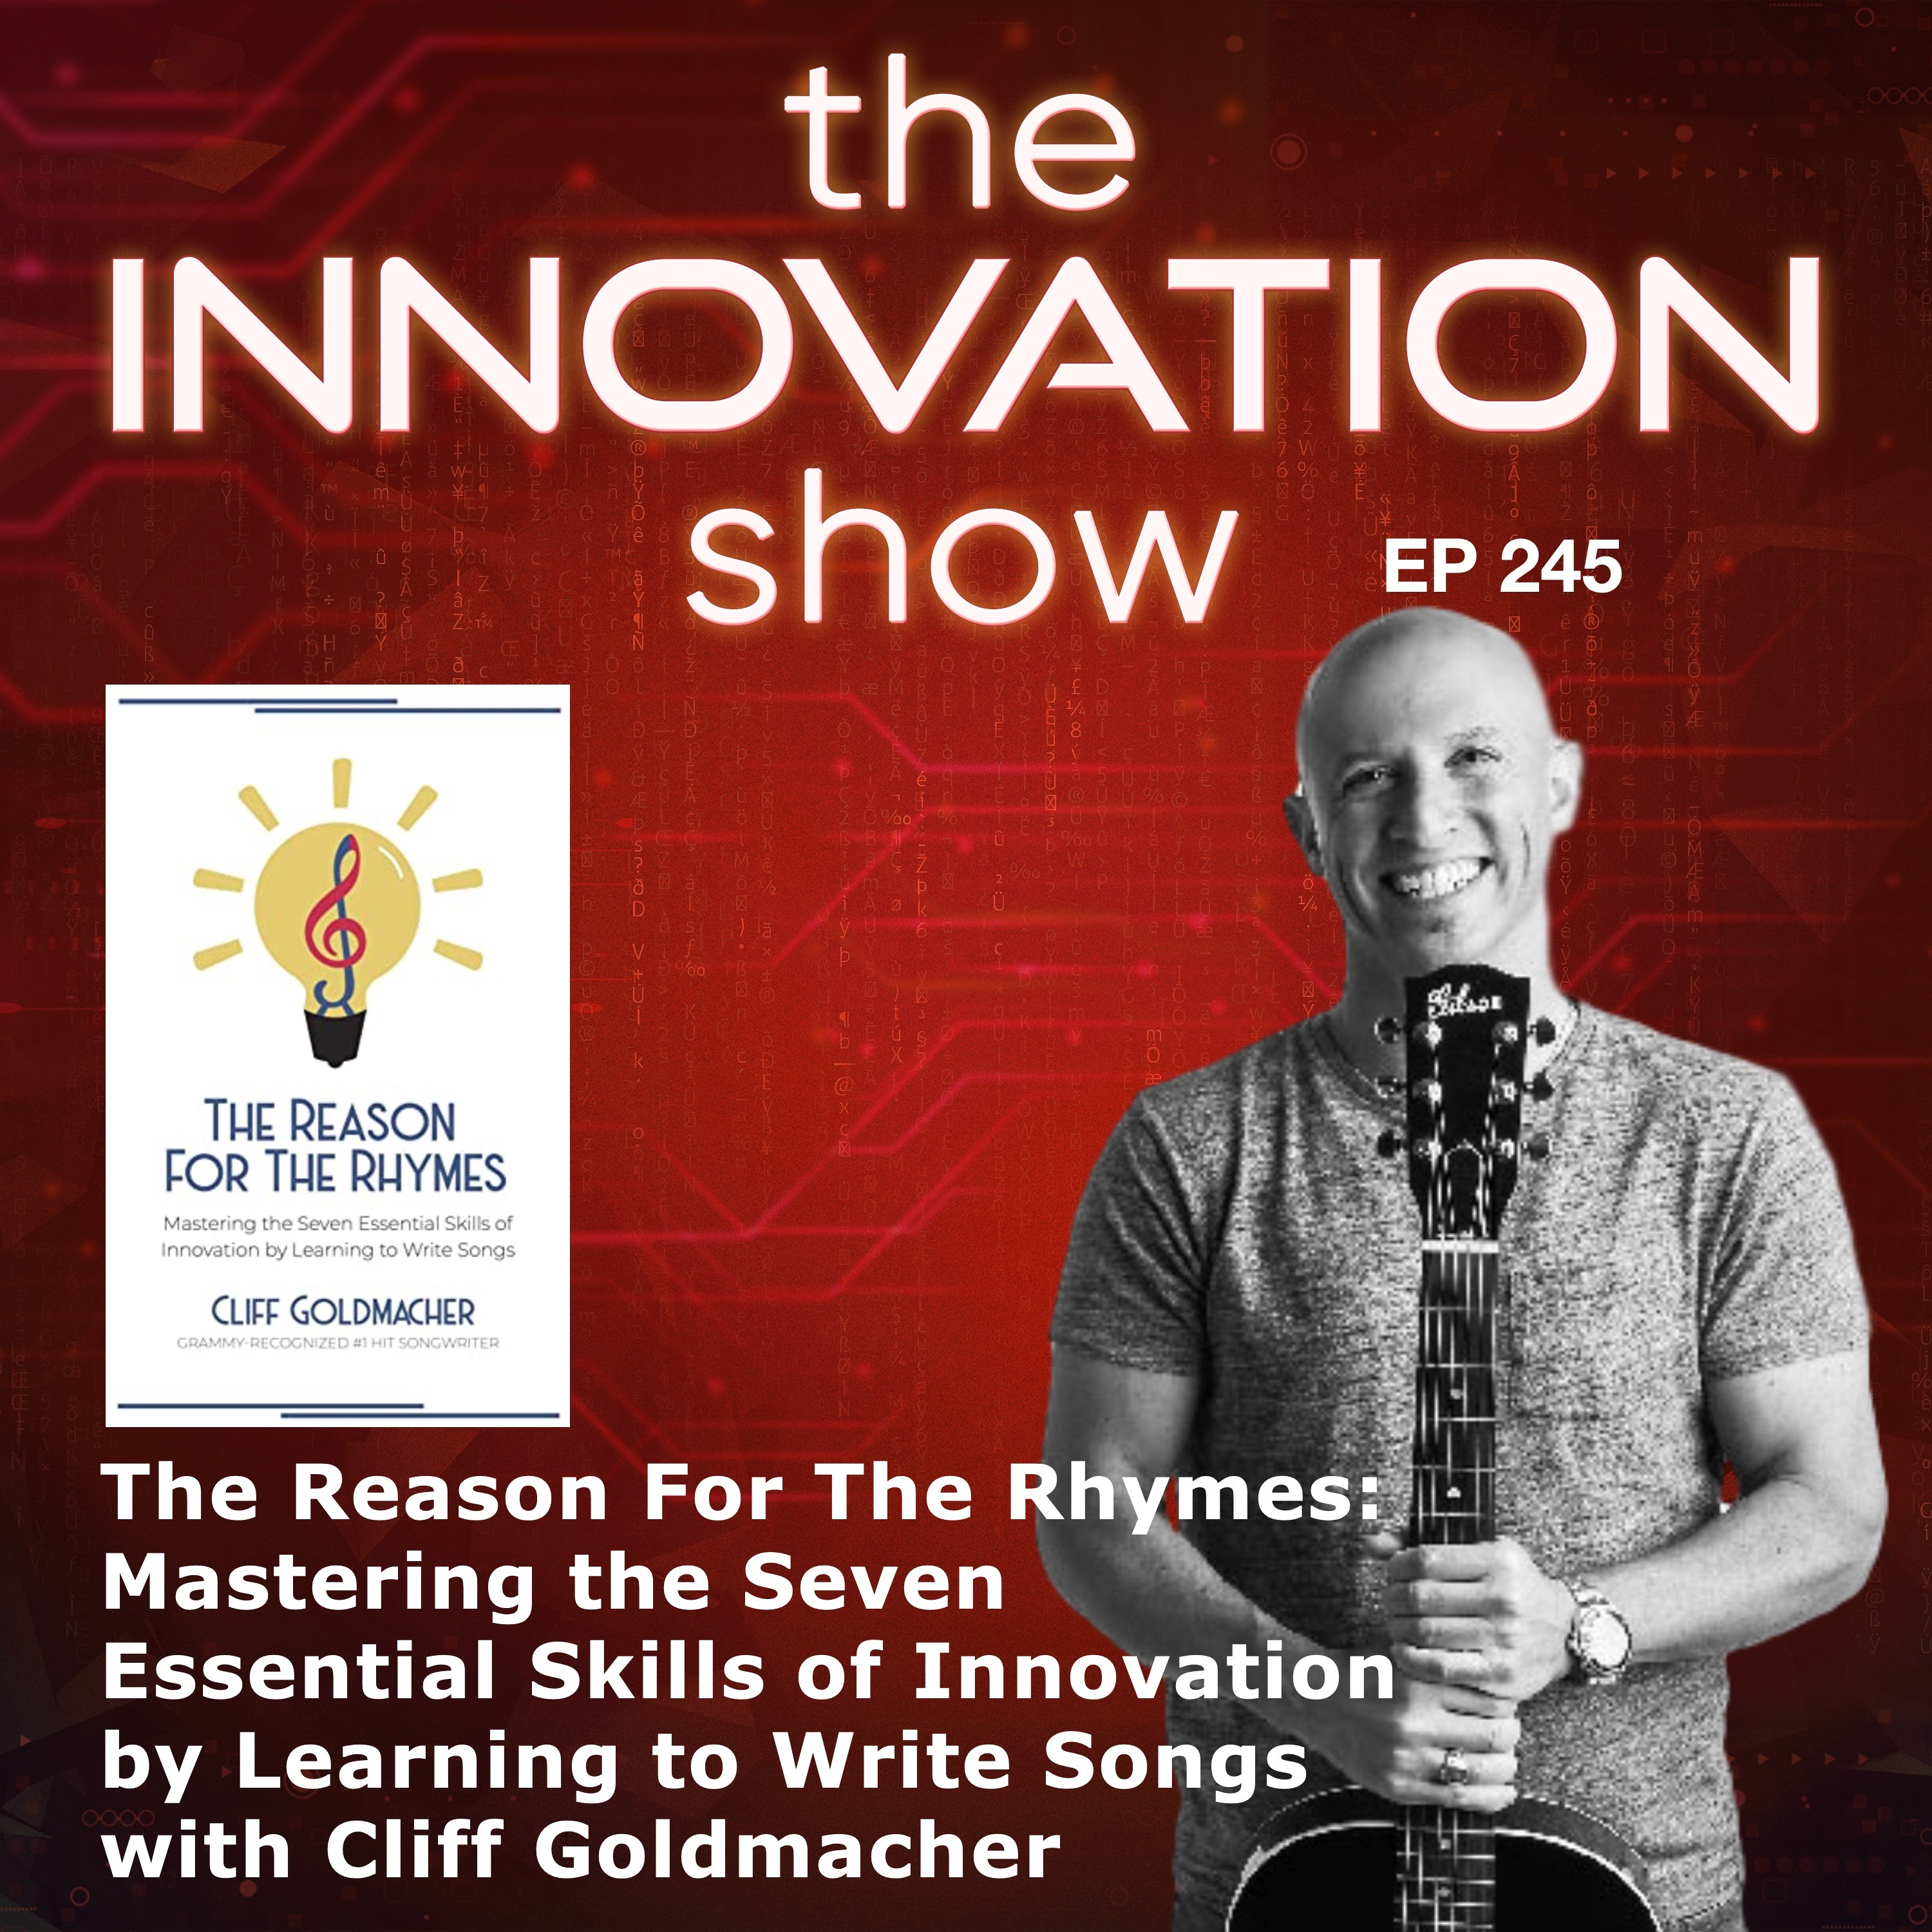 The Innovation Show